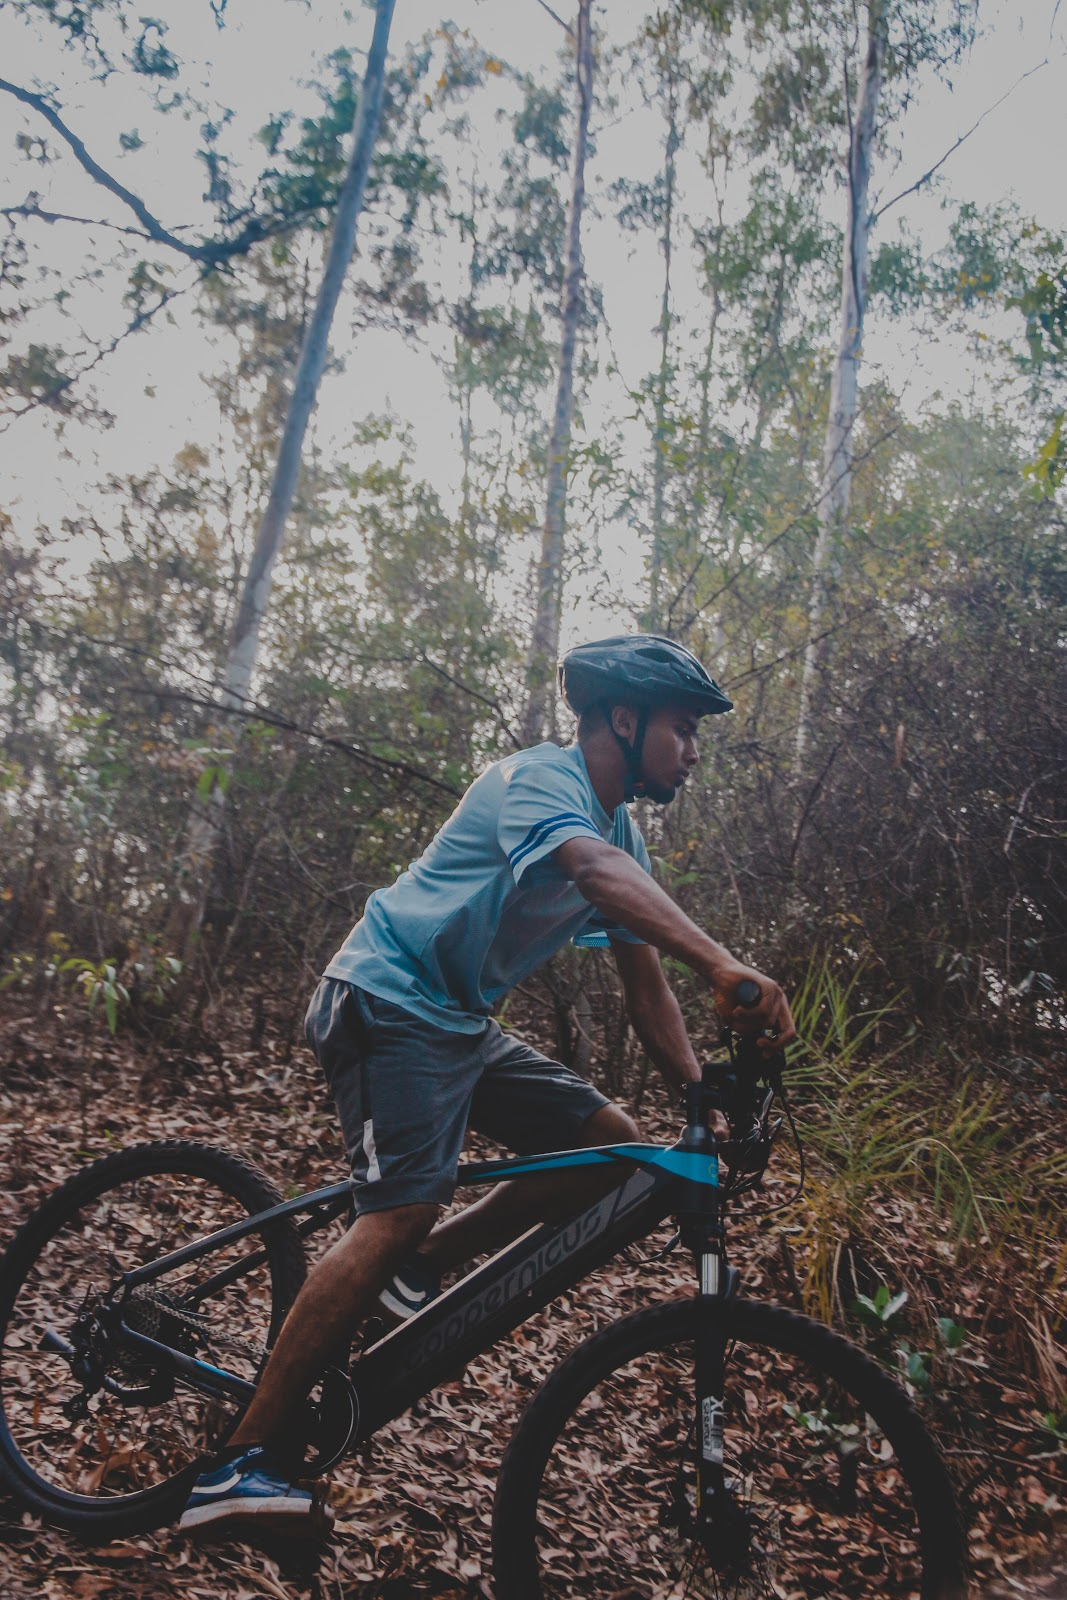 The turahalli forest cycling route, check out coppernicus.com for more information